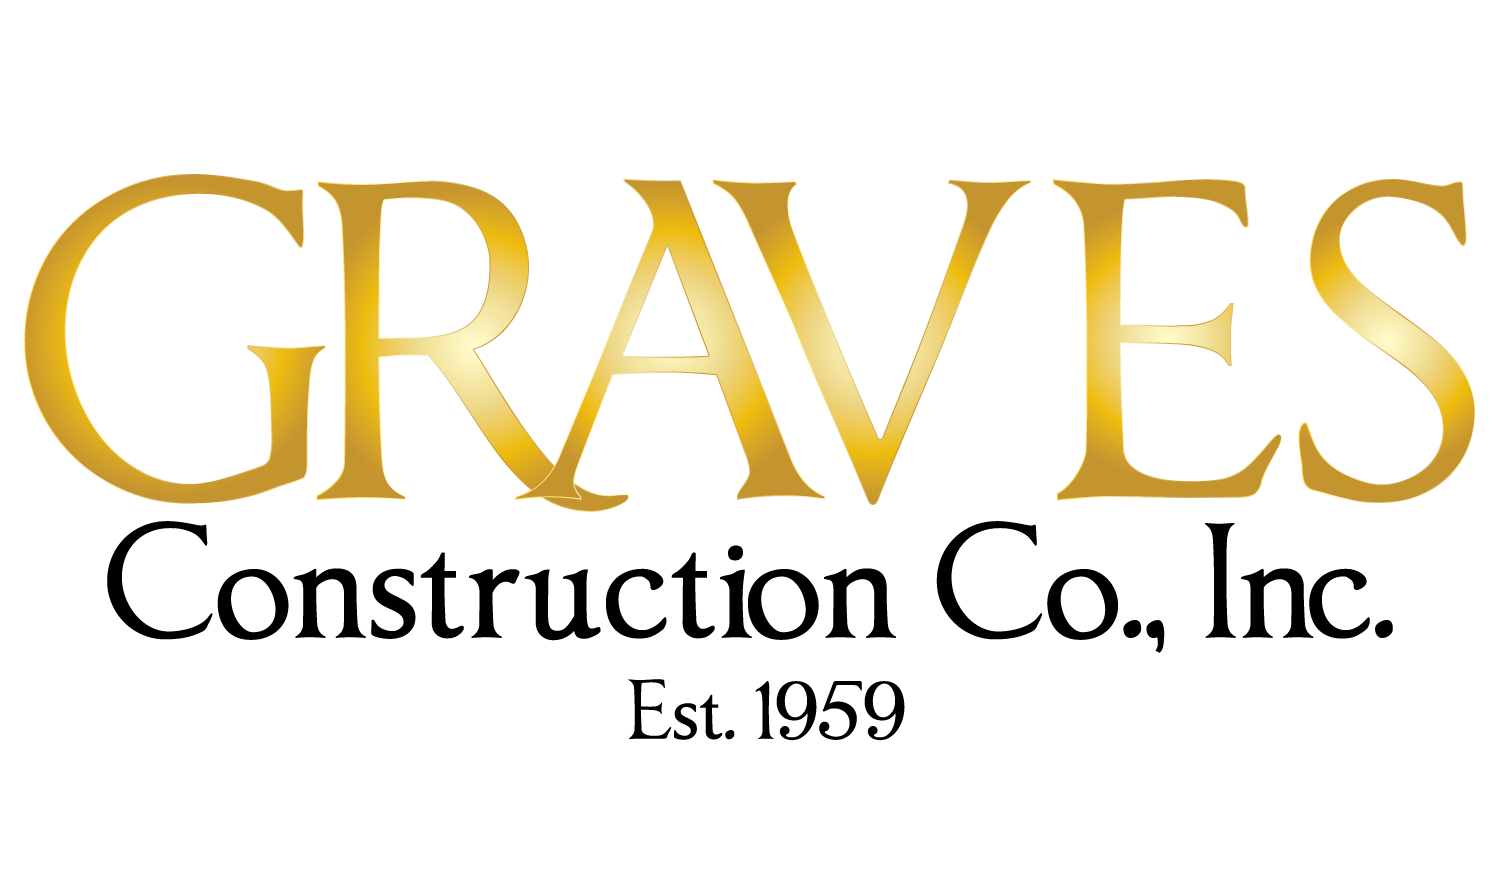 Graves Construction Co.